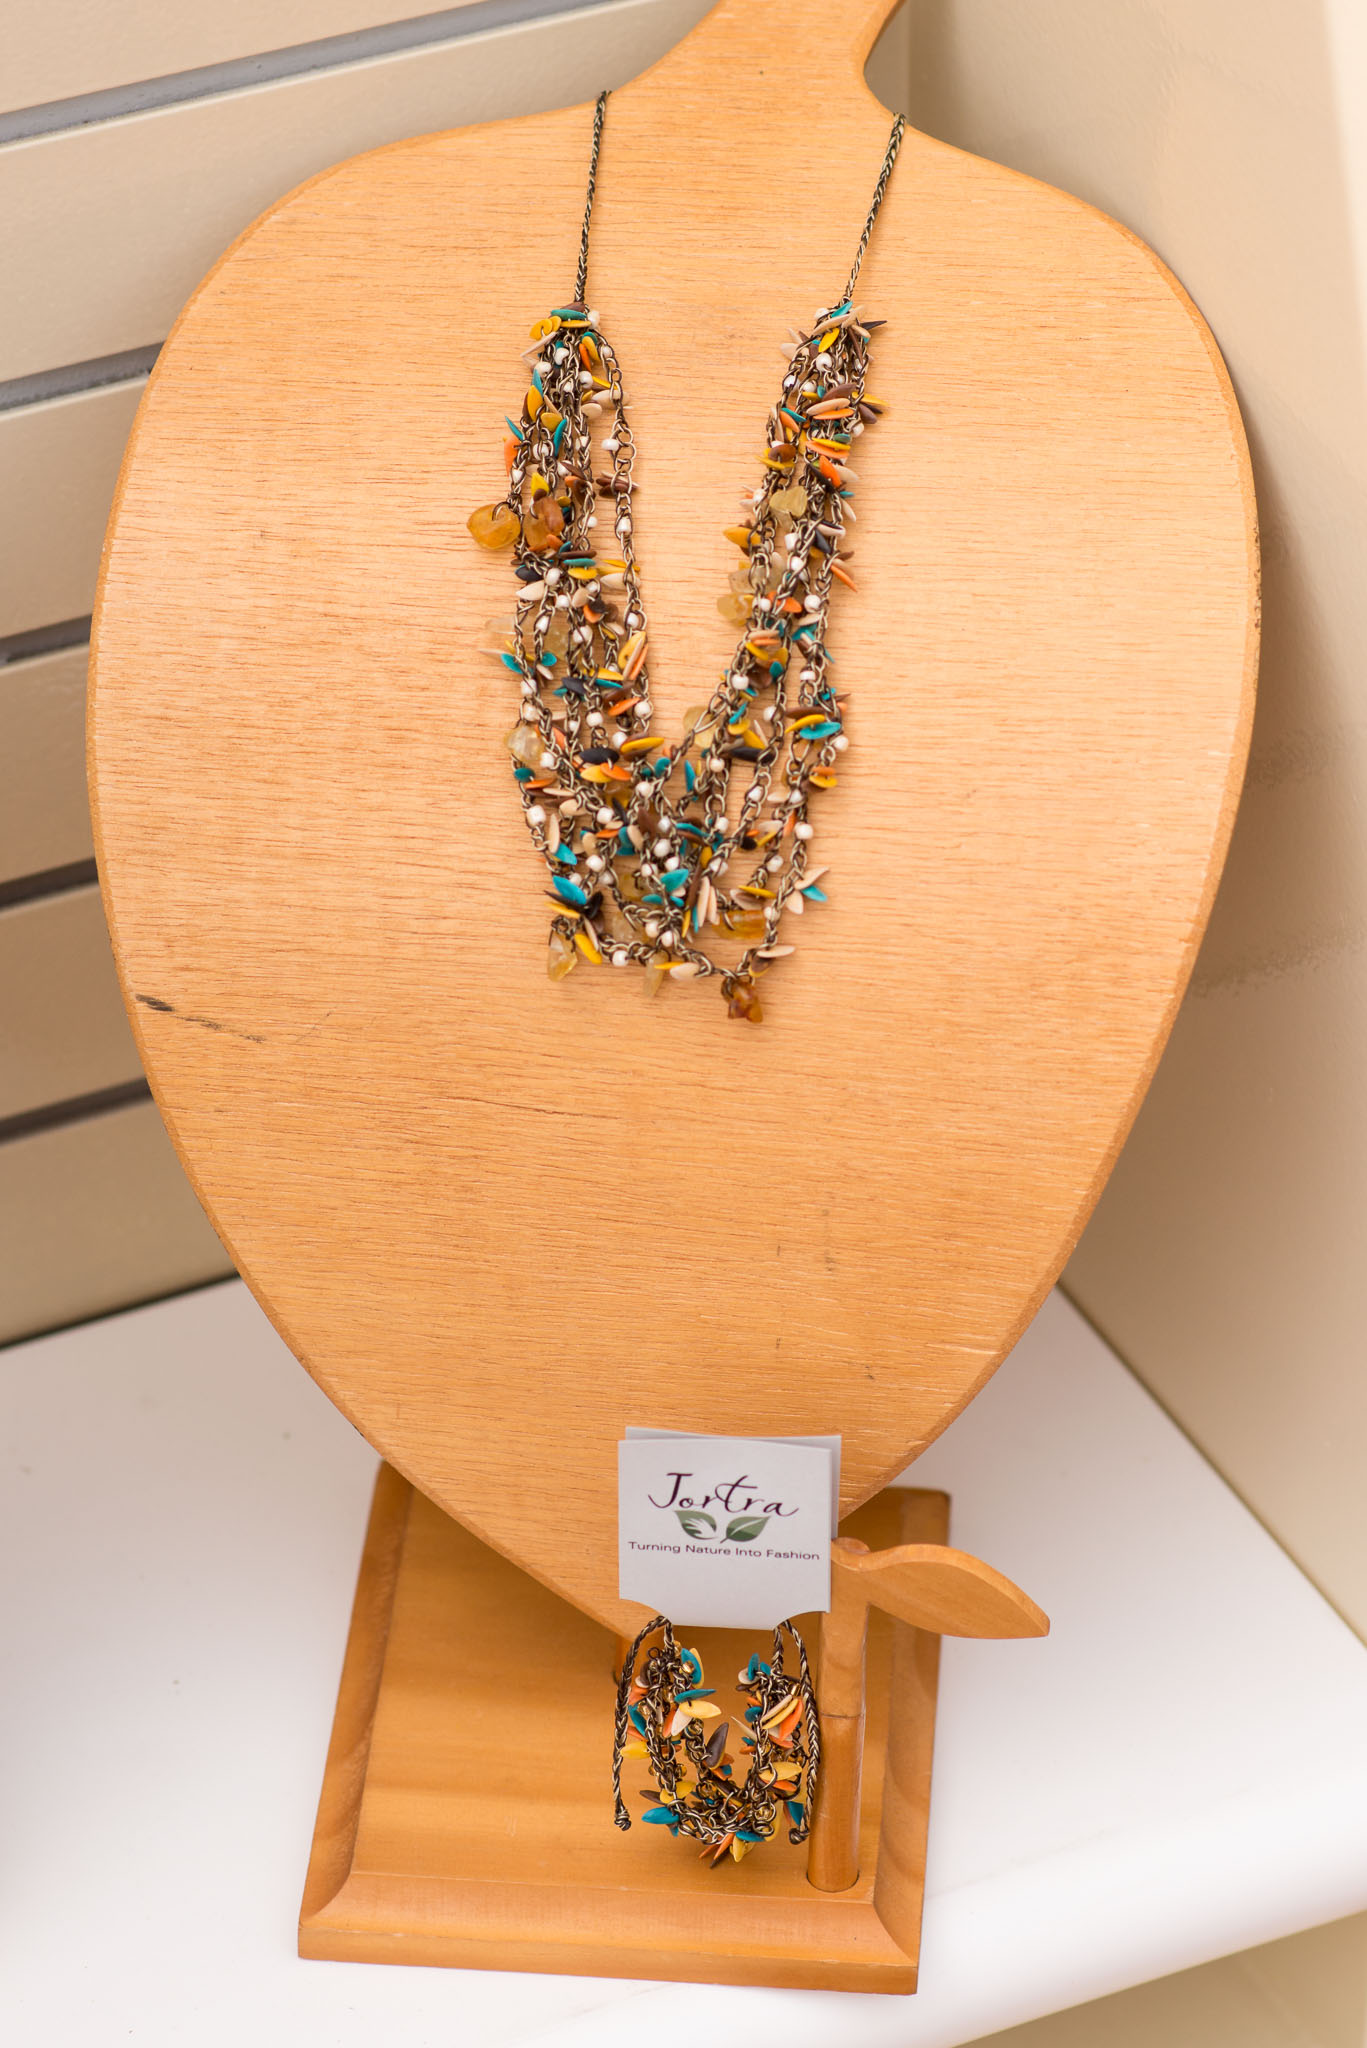 Jortra Necklace Turquoise Yellow Orange - Epcot Flower & Garden Festival 2016